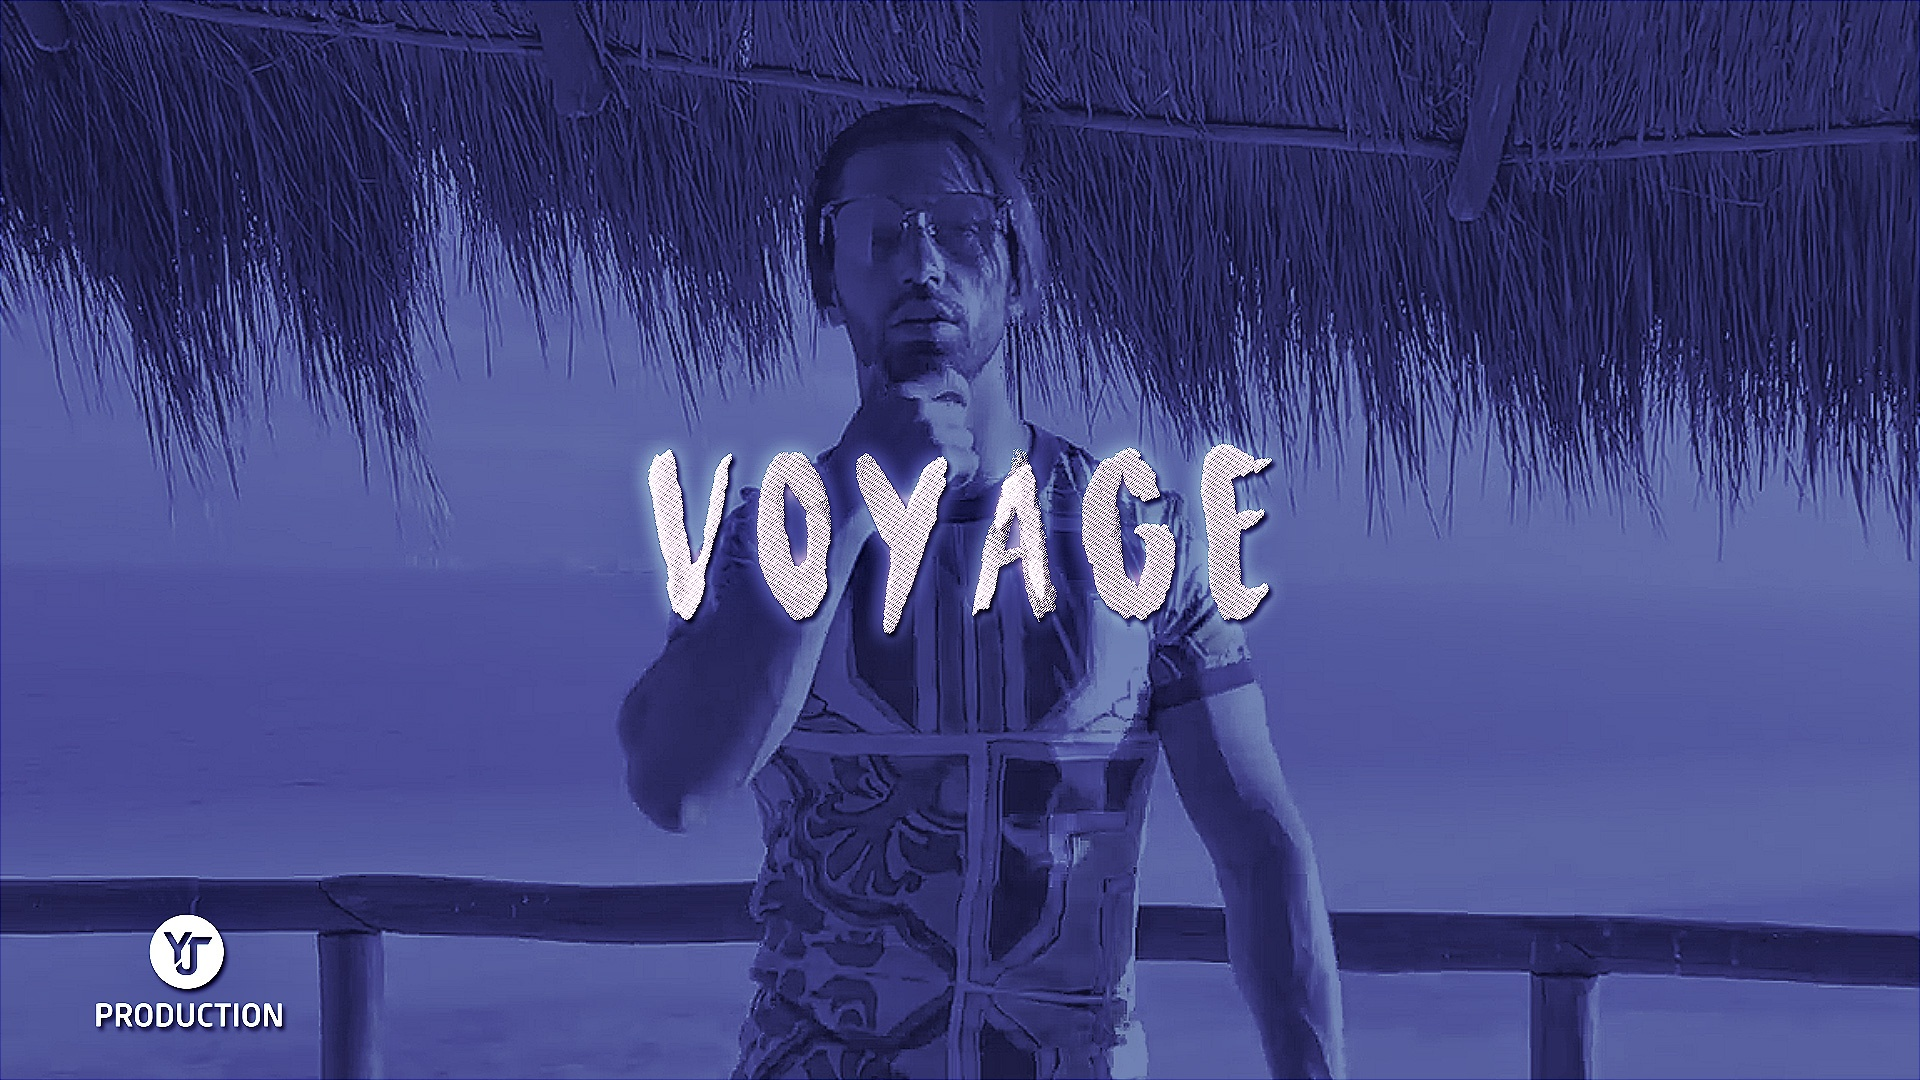 [PISTES] VOYAGE | YJ Production